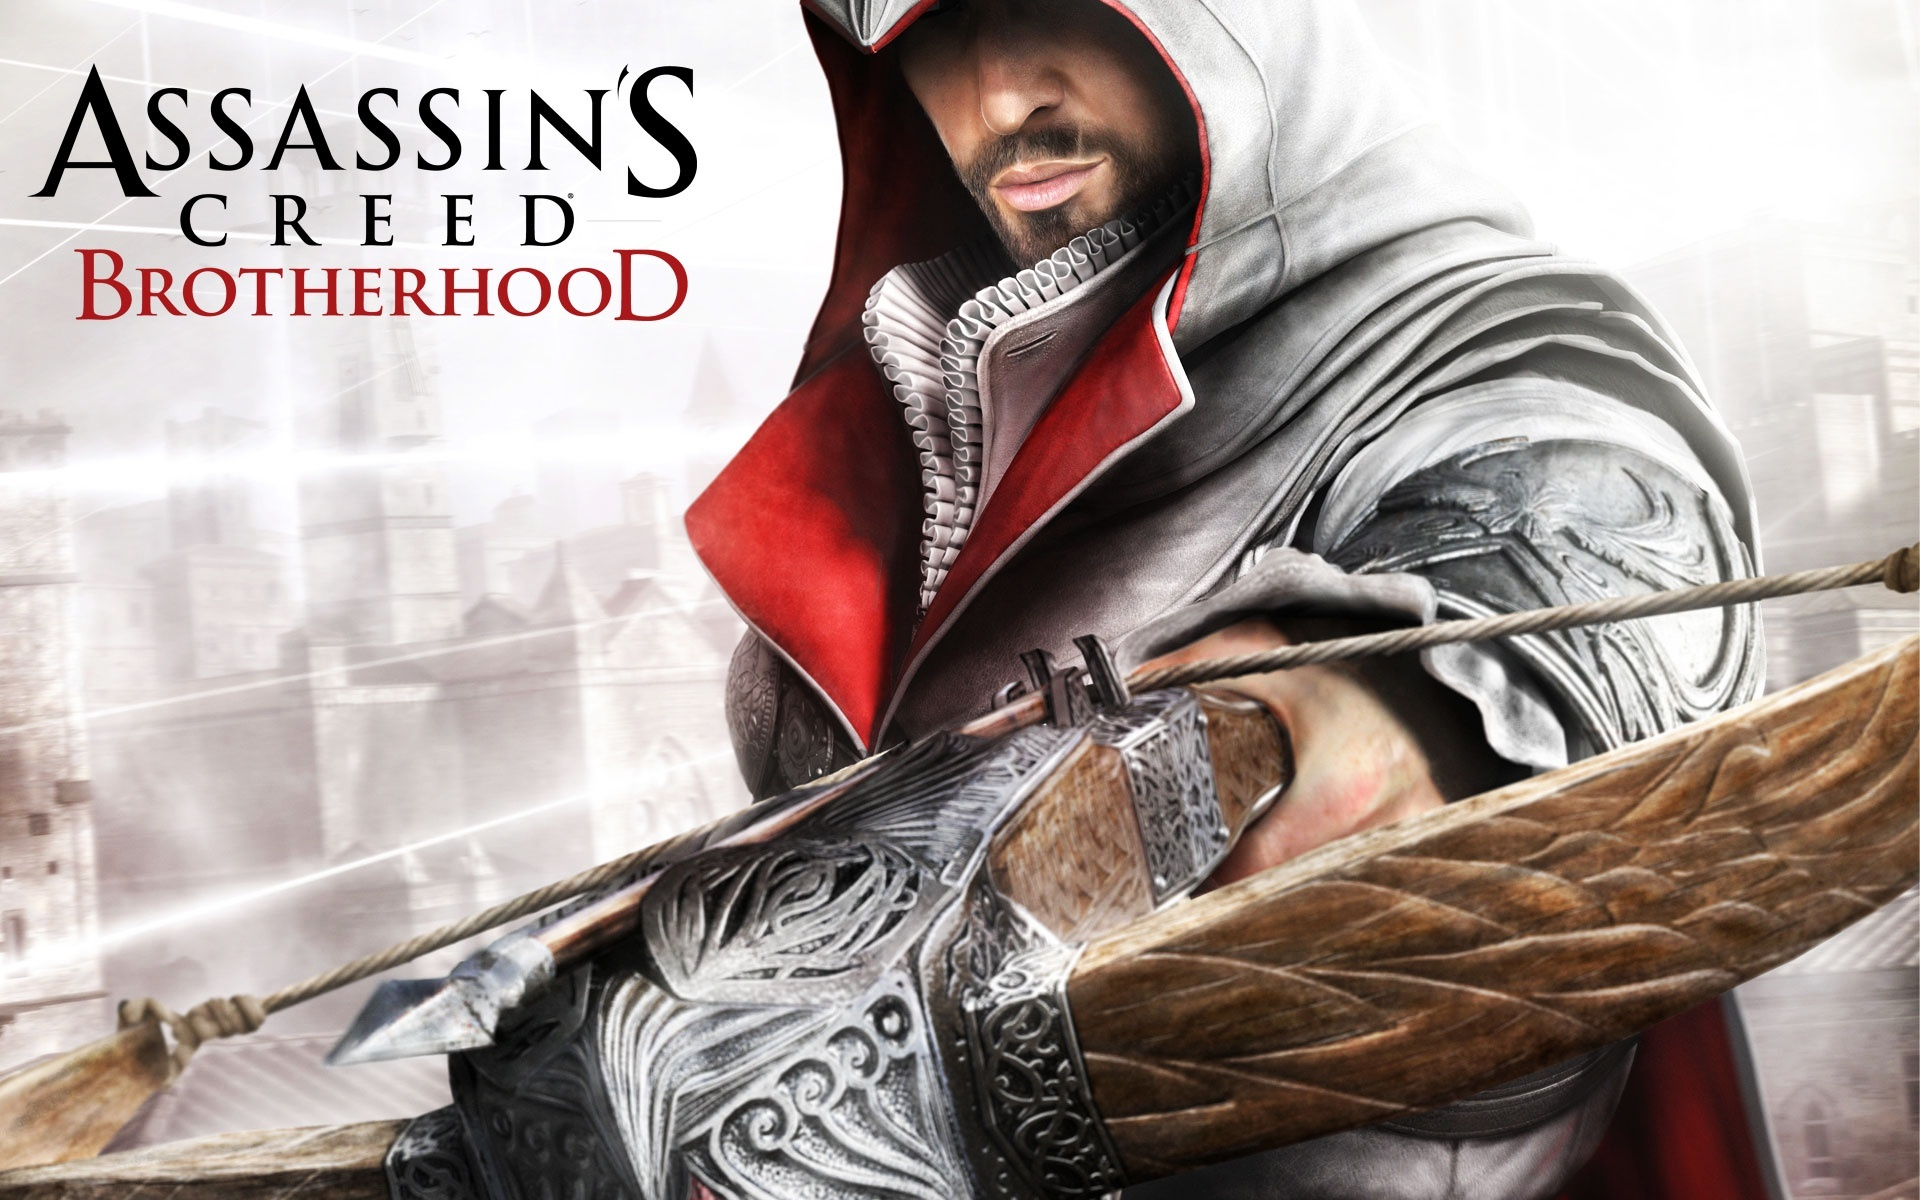 assassins creed brotherhood soundtrack download zip